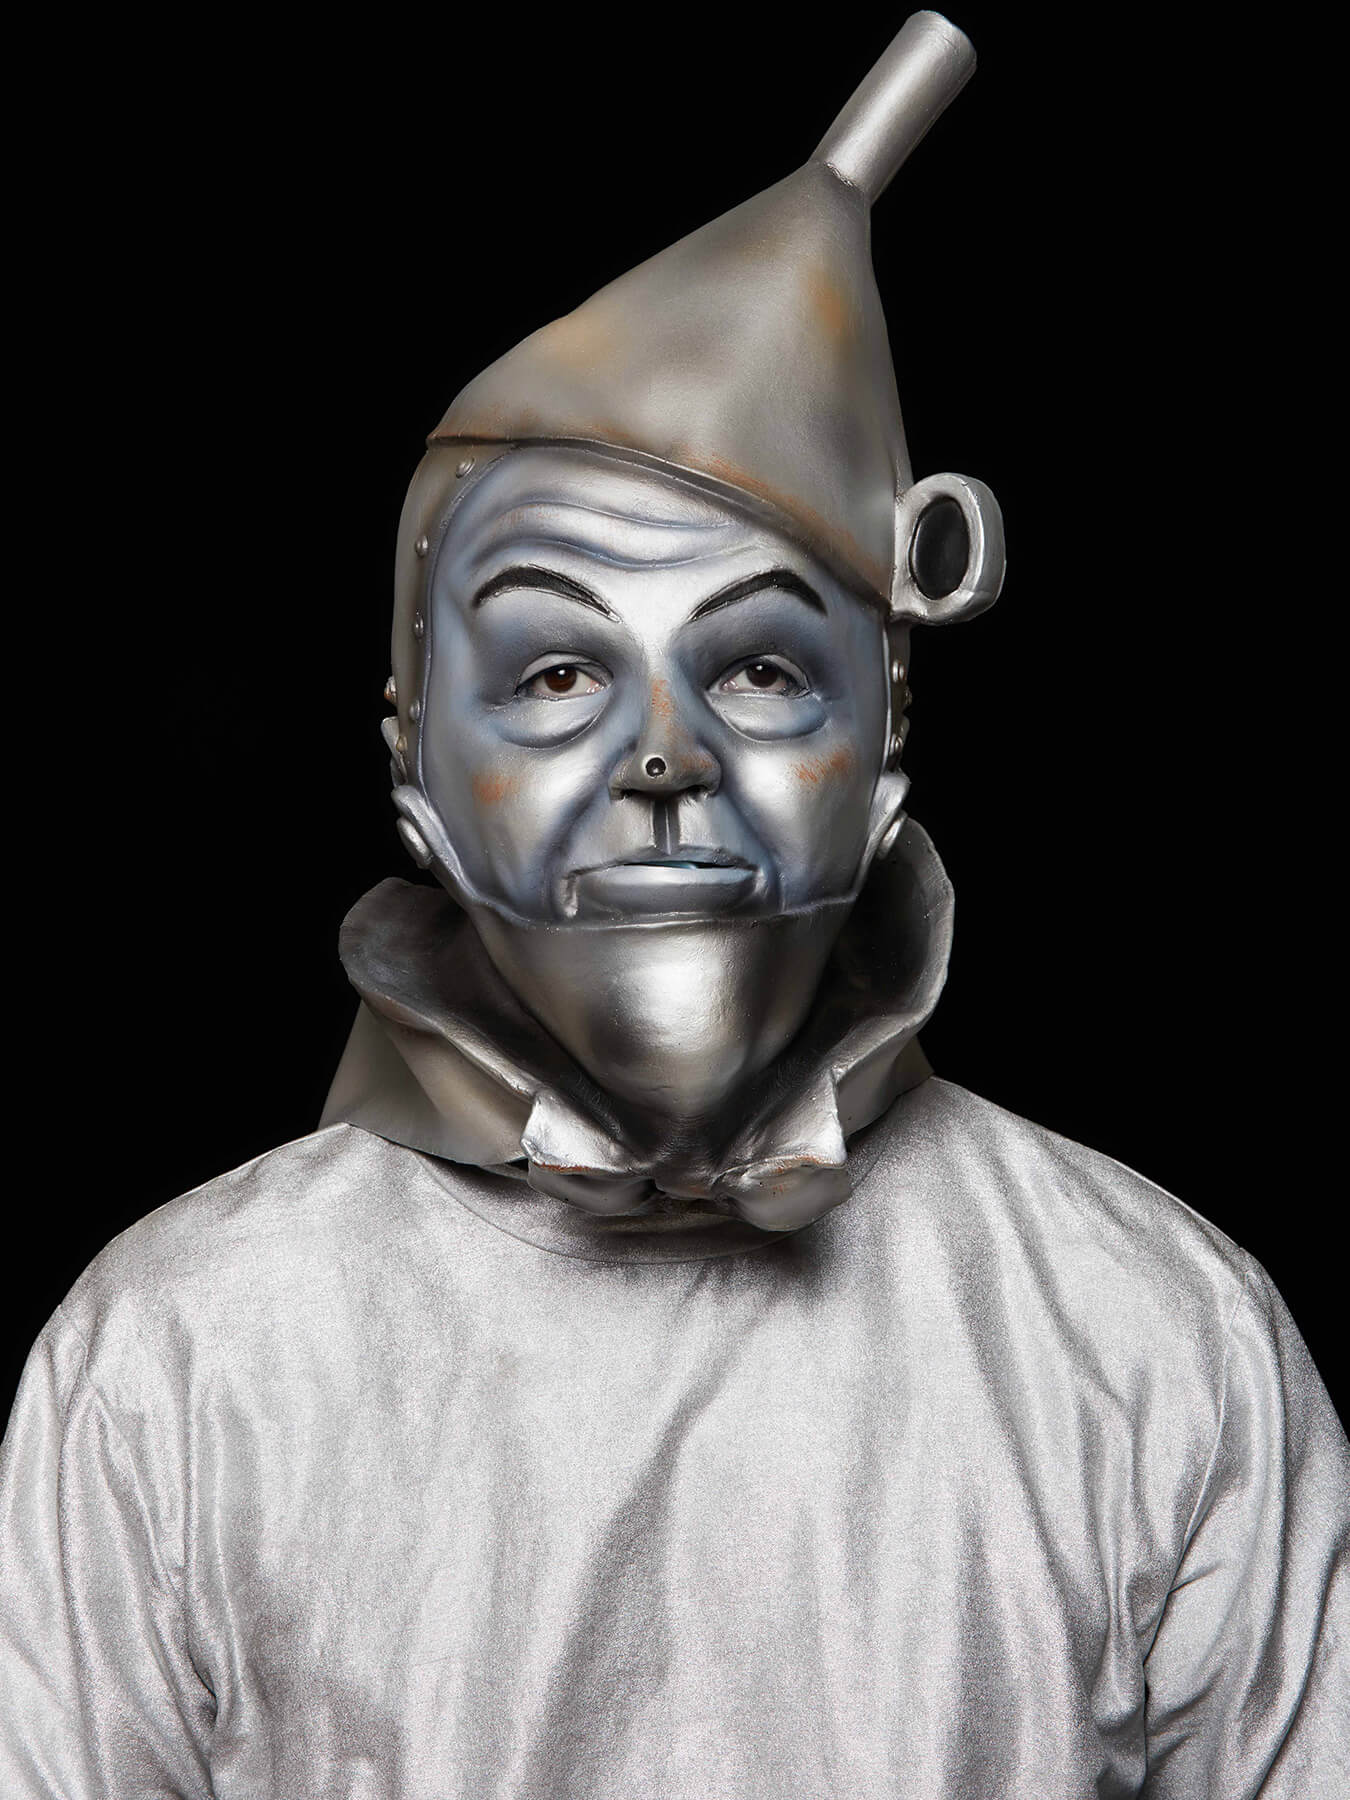 17 Jan 2018 Derong is photographed as Tinman from the wizard of oz